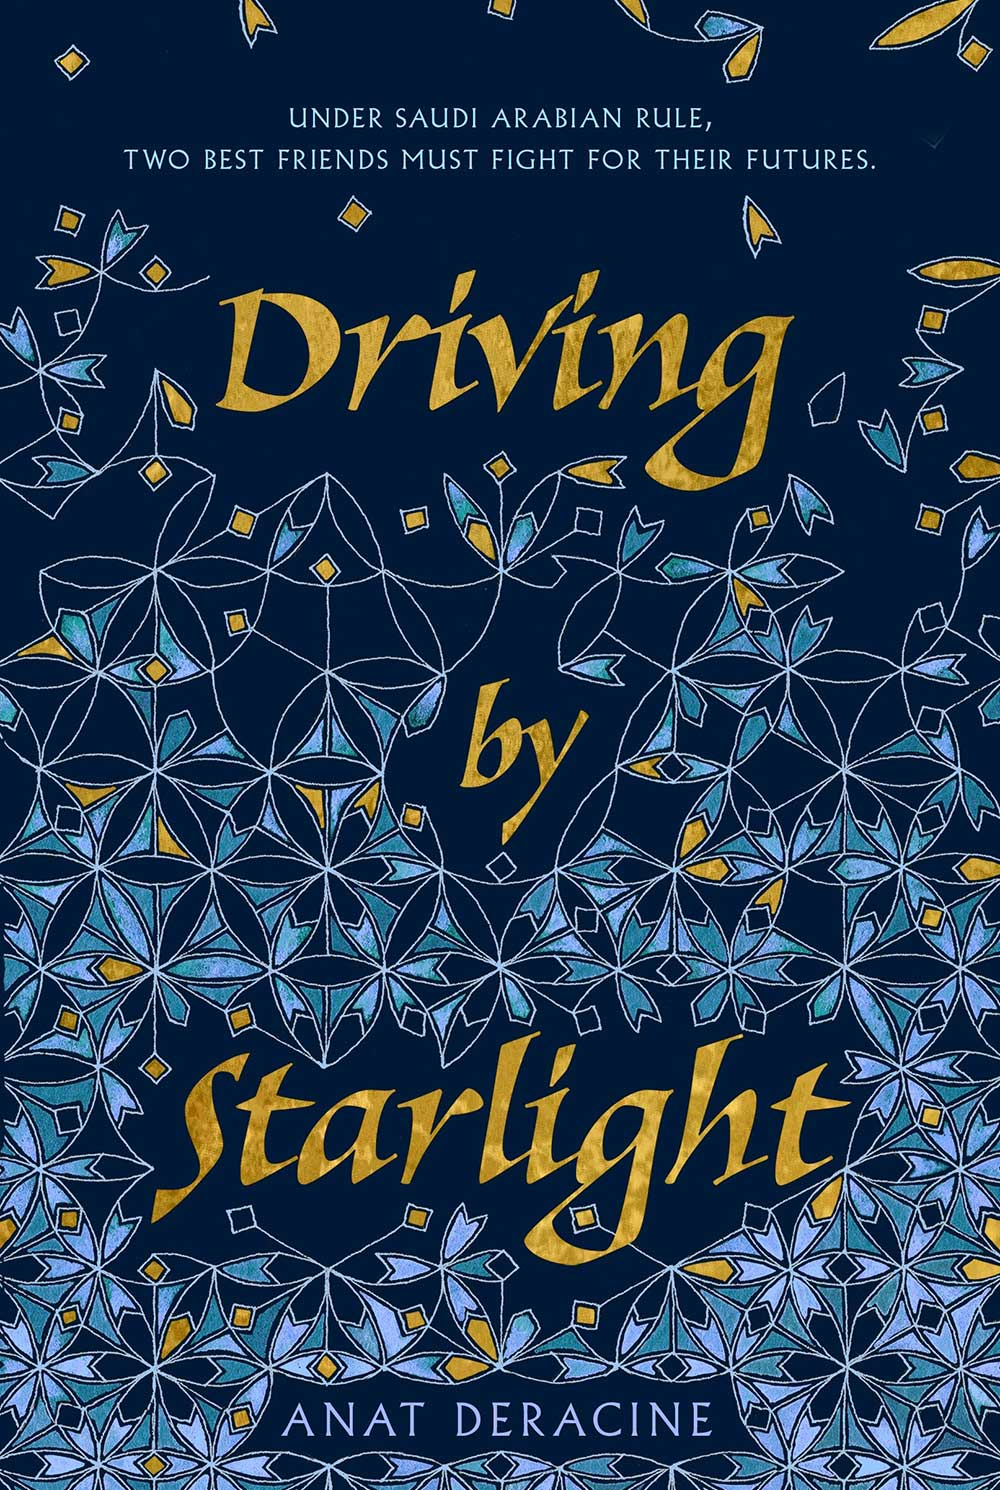 04-Driving-by-Starlight